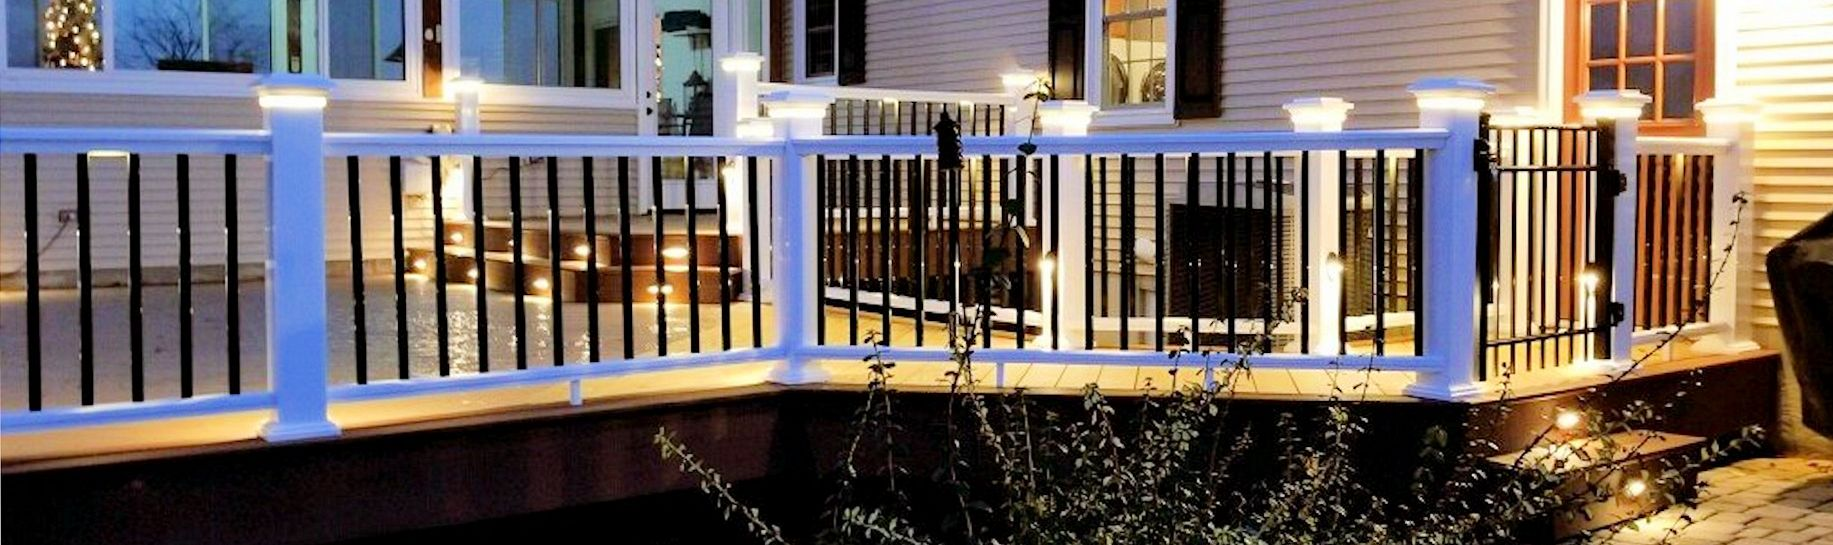 Azek-Vinyl-Deck-LED-Lights-Turbotville-Pennsylvania-12